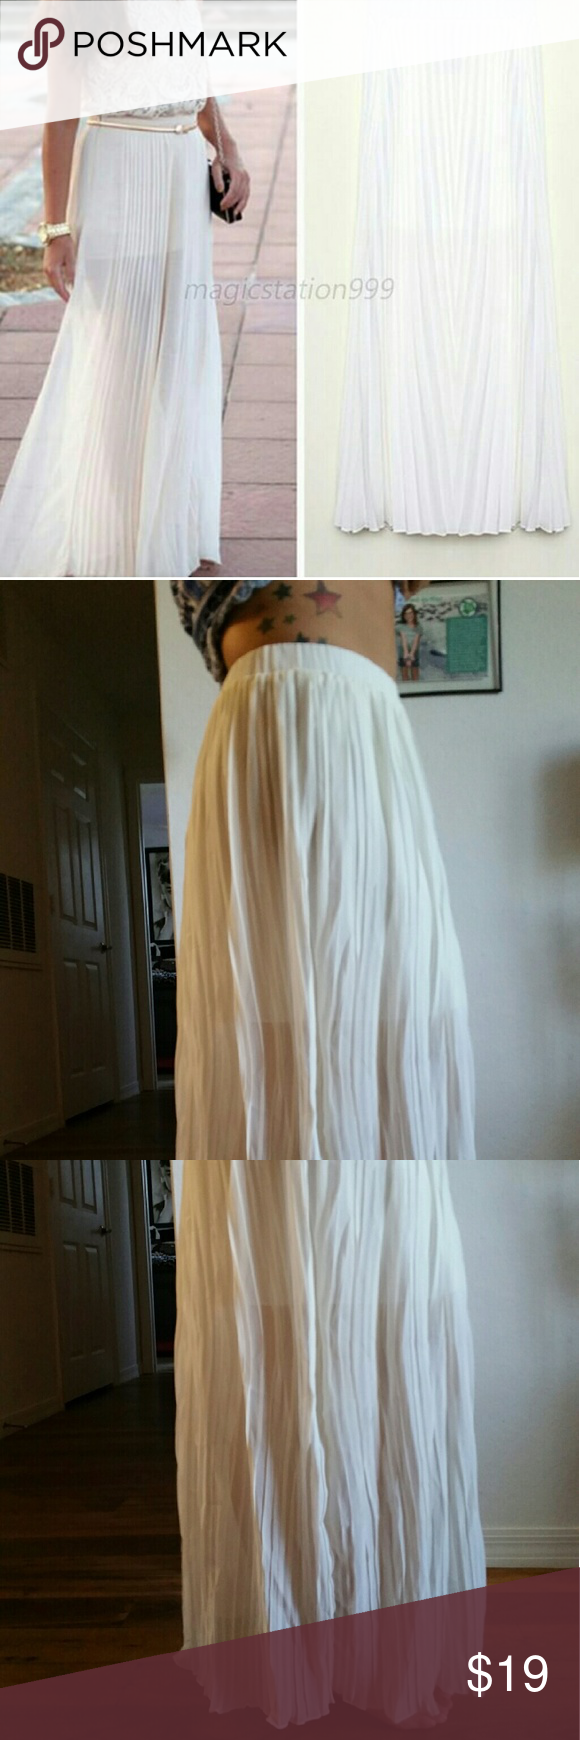 "NEW white chiffon maxi skirt This is brand new (didn't come with tags). It's a white chiffon maxi skirt, sized as a large but fits XS, SM, and MD. (I'm usually a sz 4-6). The last 2 pics are side views of the skirt. I'm wearing it at my natural waist (not hips), and I'm 5'4"". Skirts Maxi"